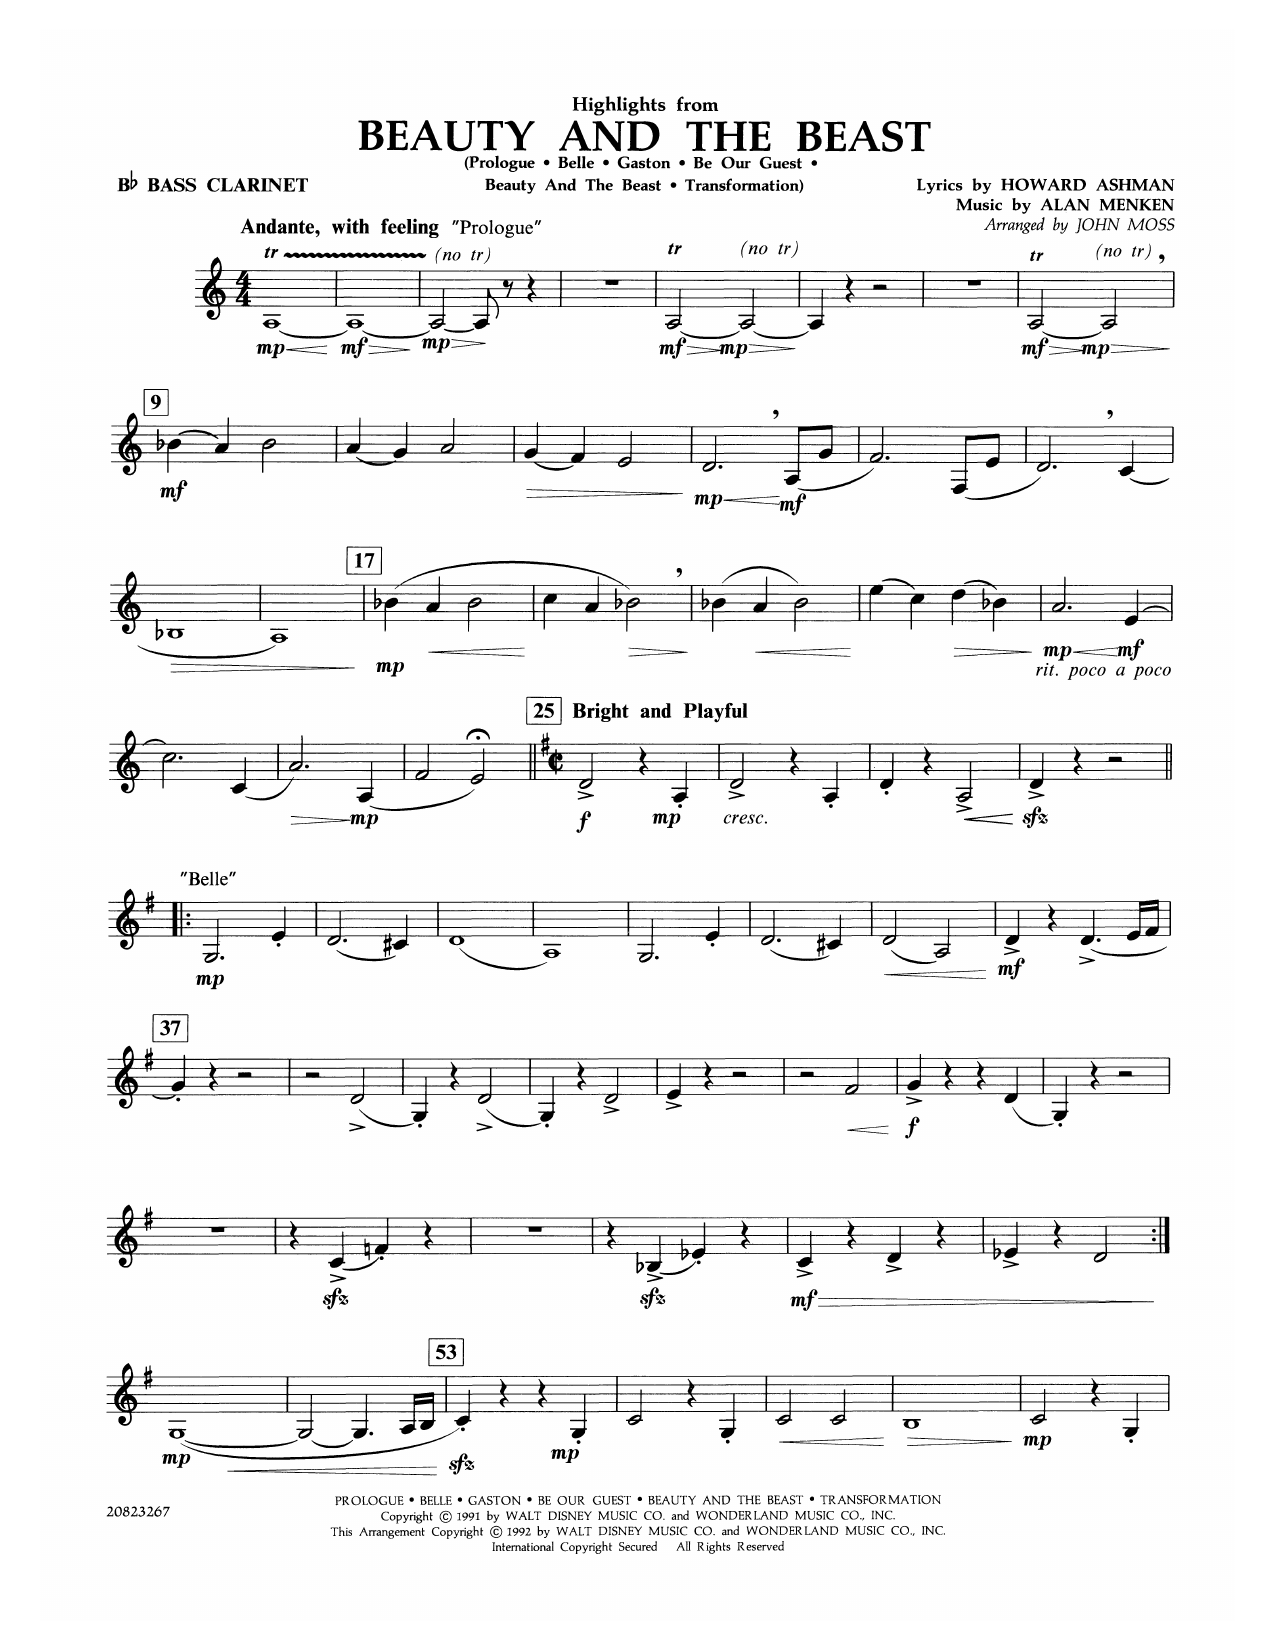 John Moss Highlights from Beauty and the Beast - Bb Bass Clarinet sheet music notes and chords. Download Printable PDF.